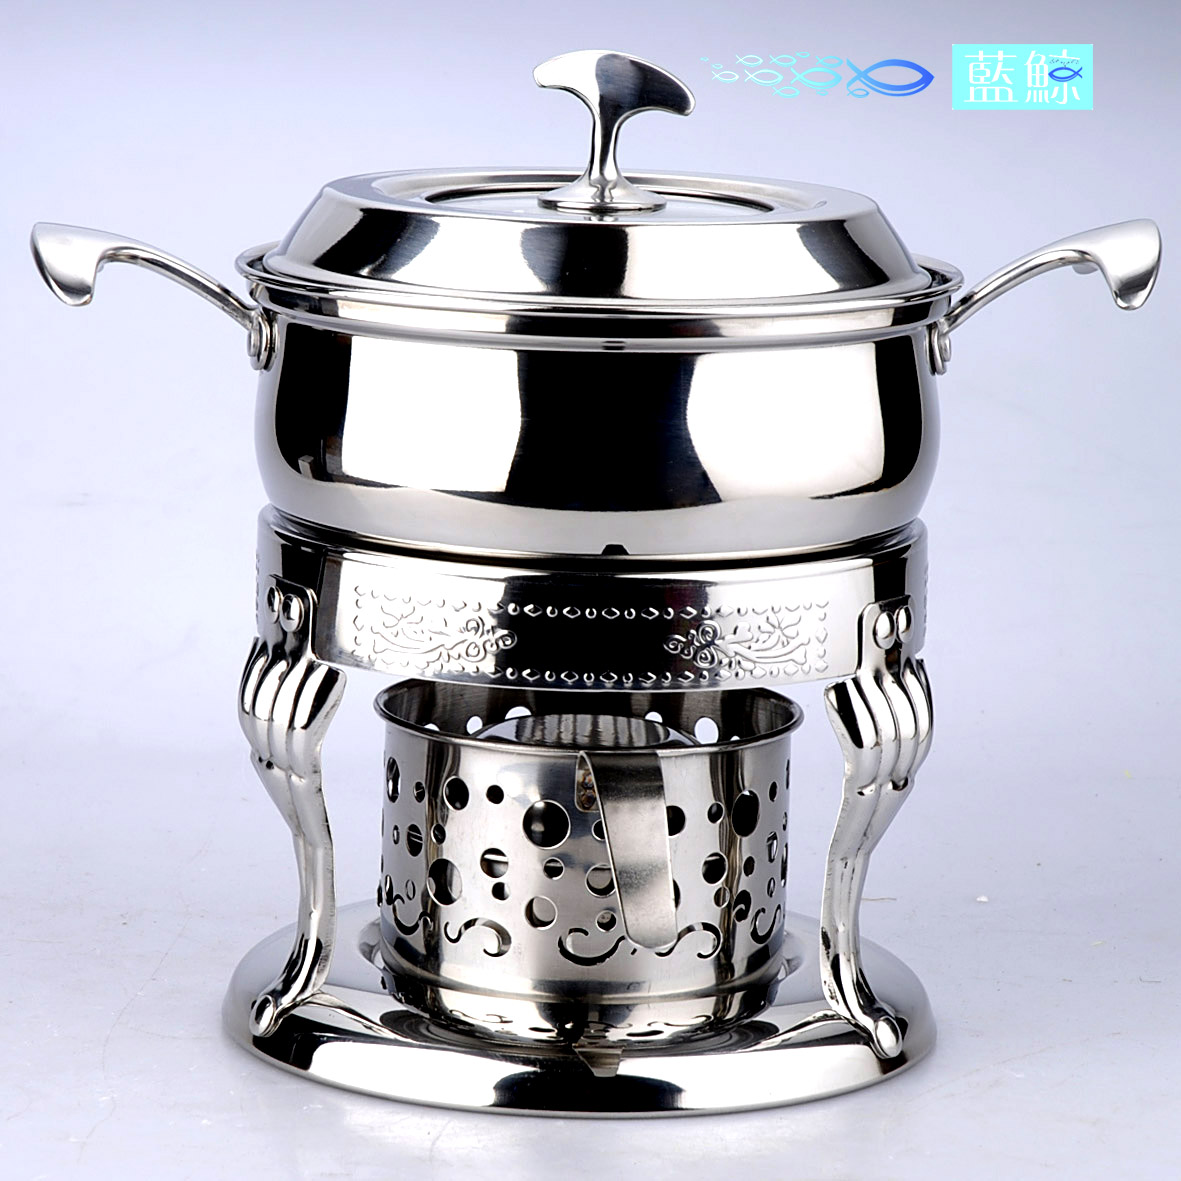 Blue whale euclidian binaural thick stainless steel liquid alcohol stove small pot personal help restaurant shop with a large size